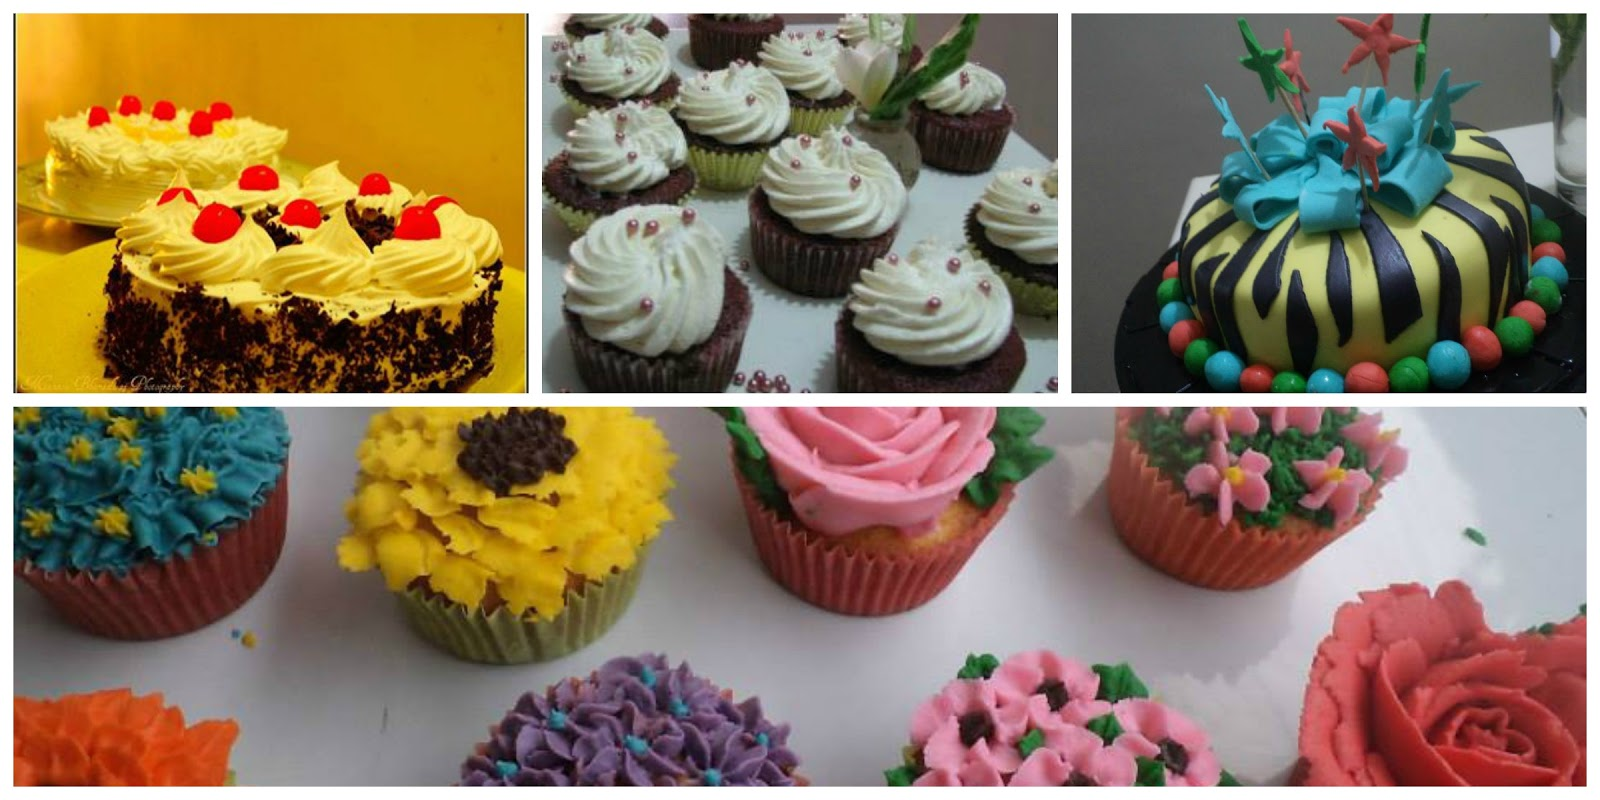 Cake Making Classes Trivandrum : Foodie Delights Bangalore - Life n Spice: Homemade ...